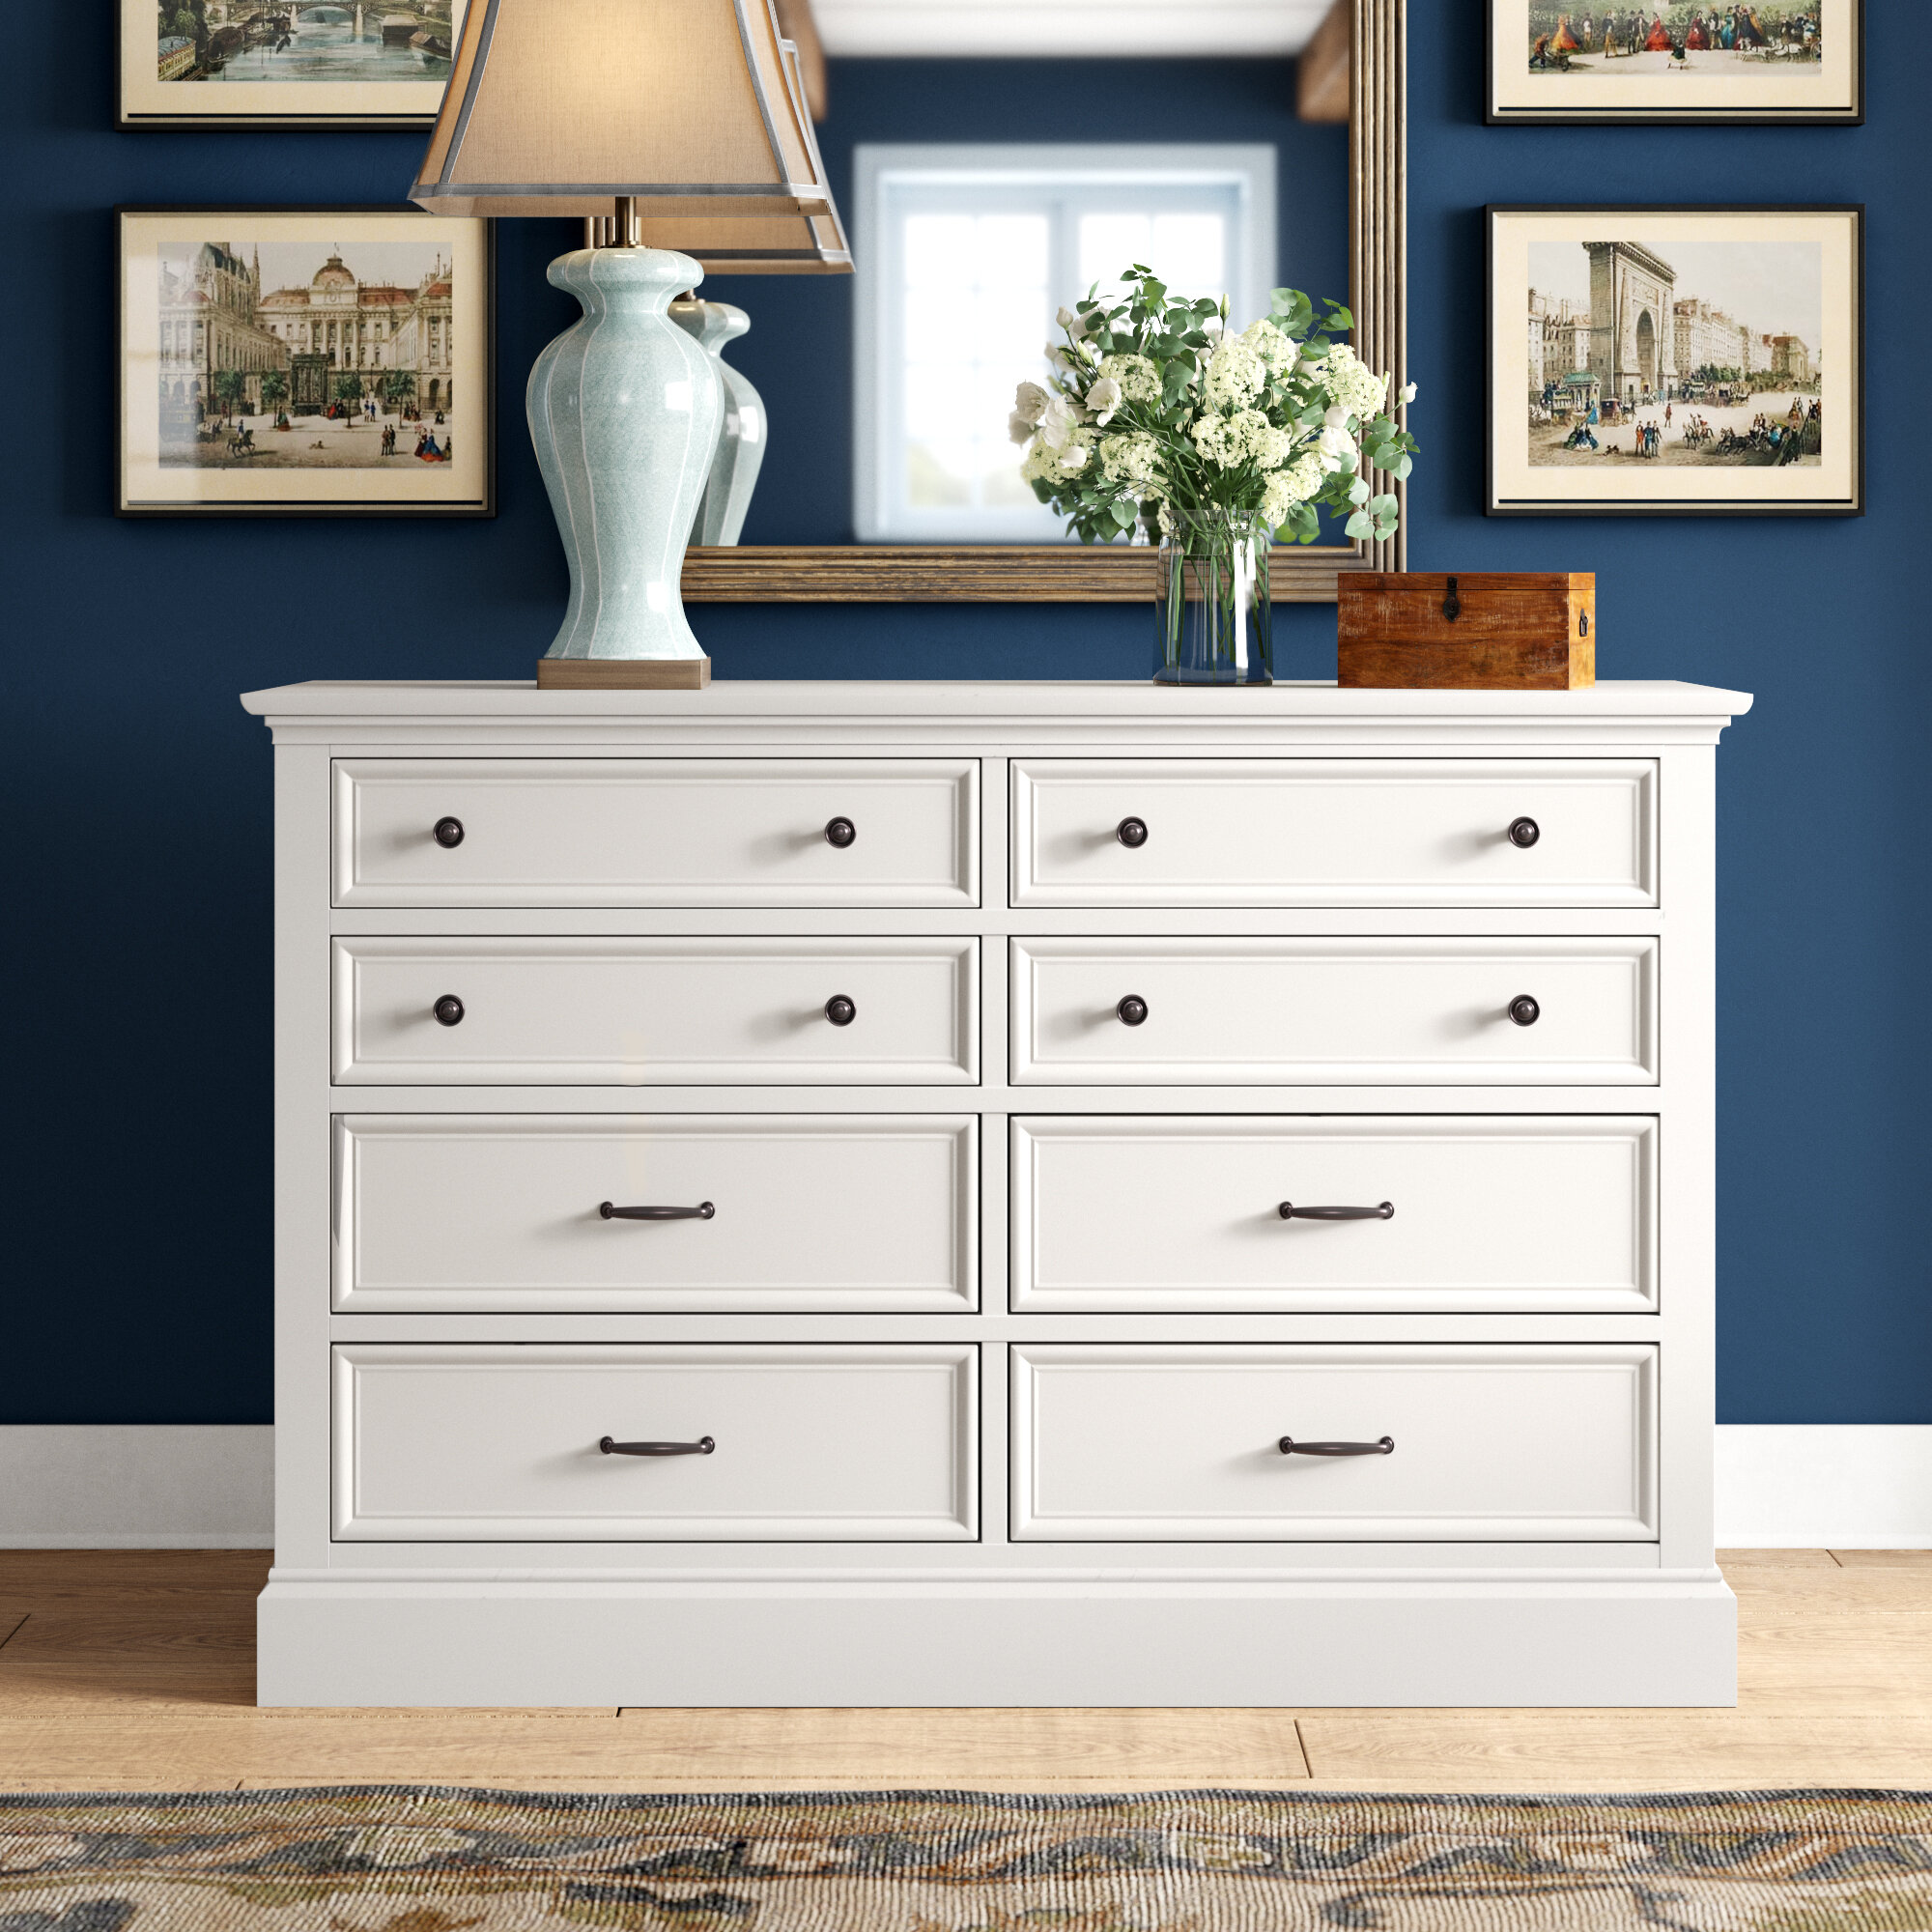 8 Mahogany Dressers Chests You Ll Love In 2021 Wayfair